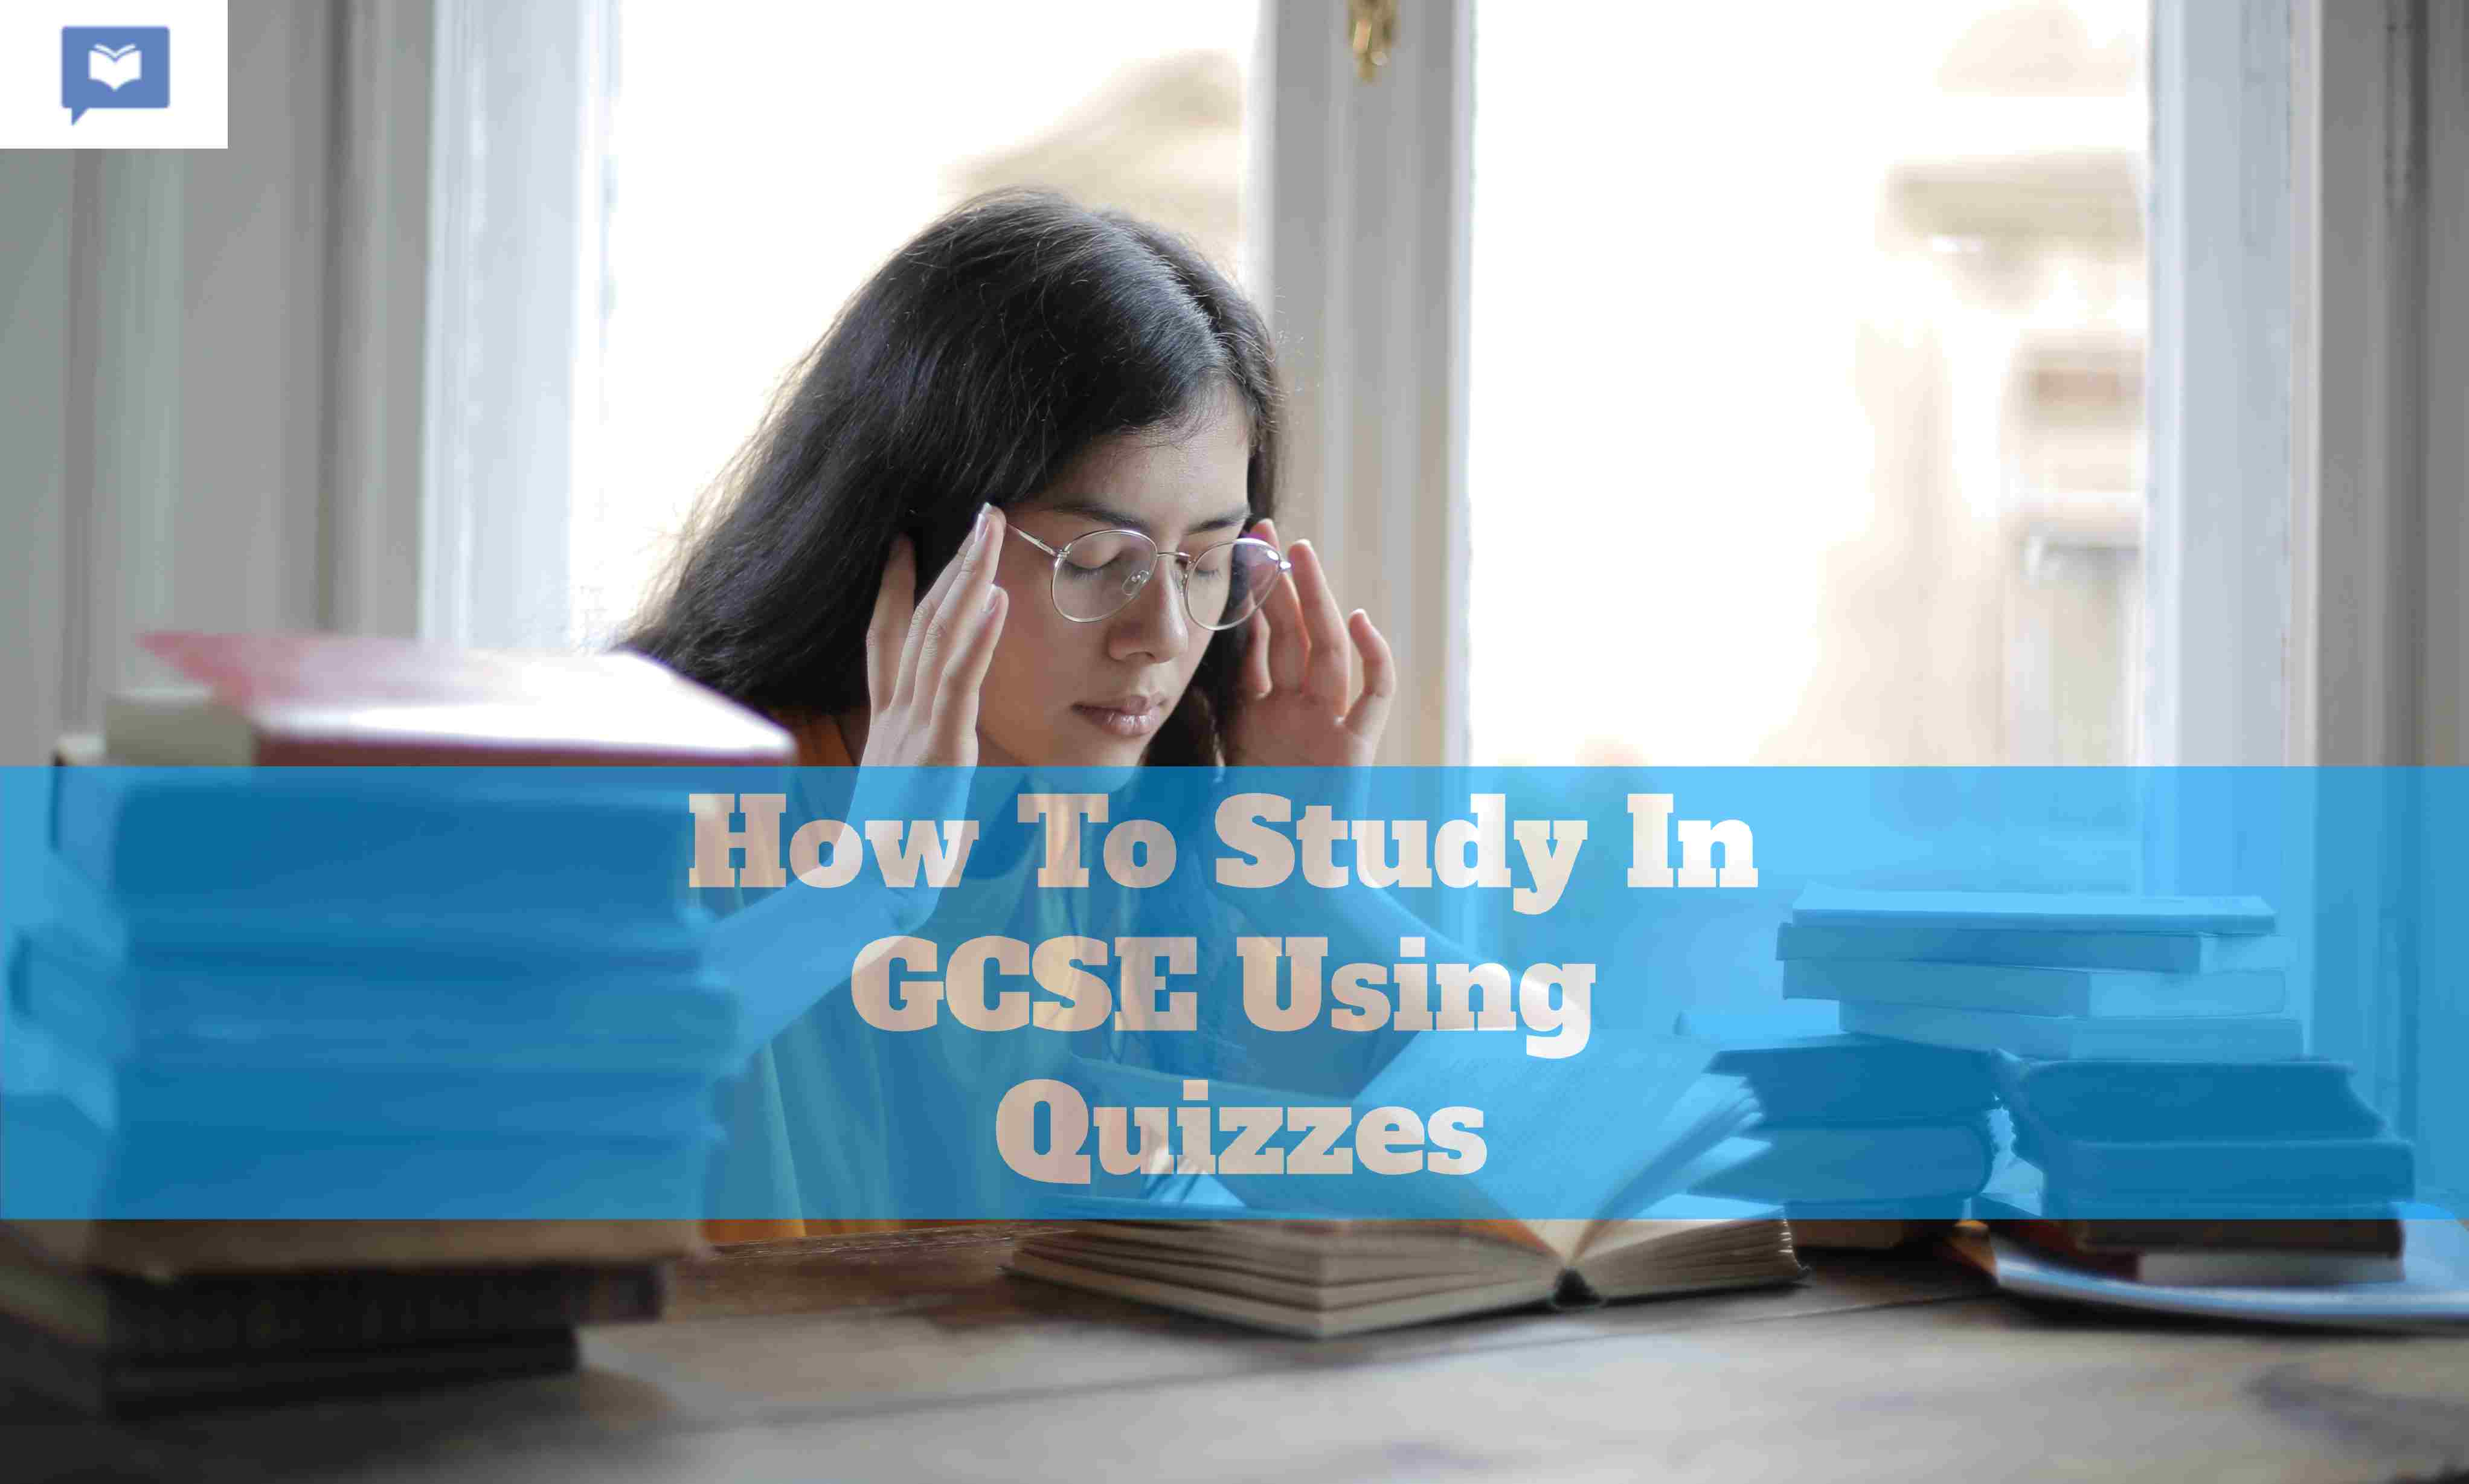 How To Study In GCSE Using Quizzes